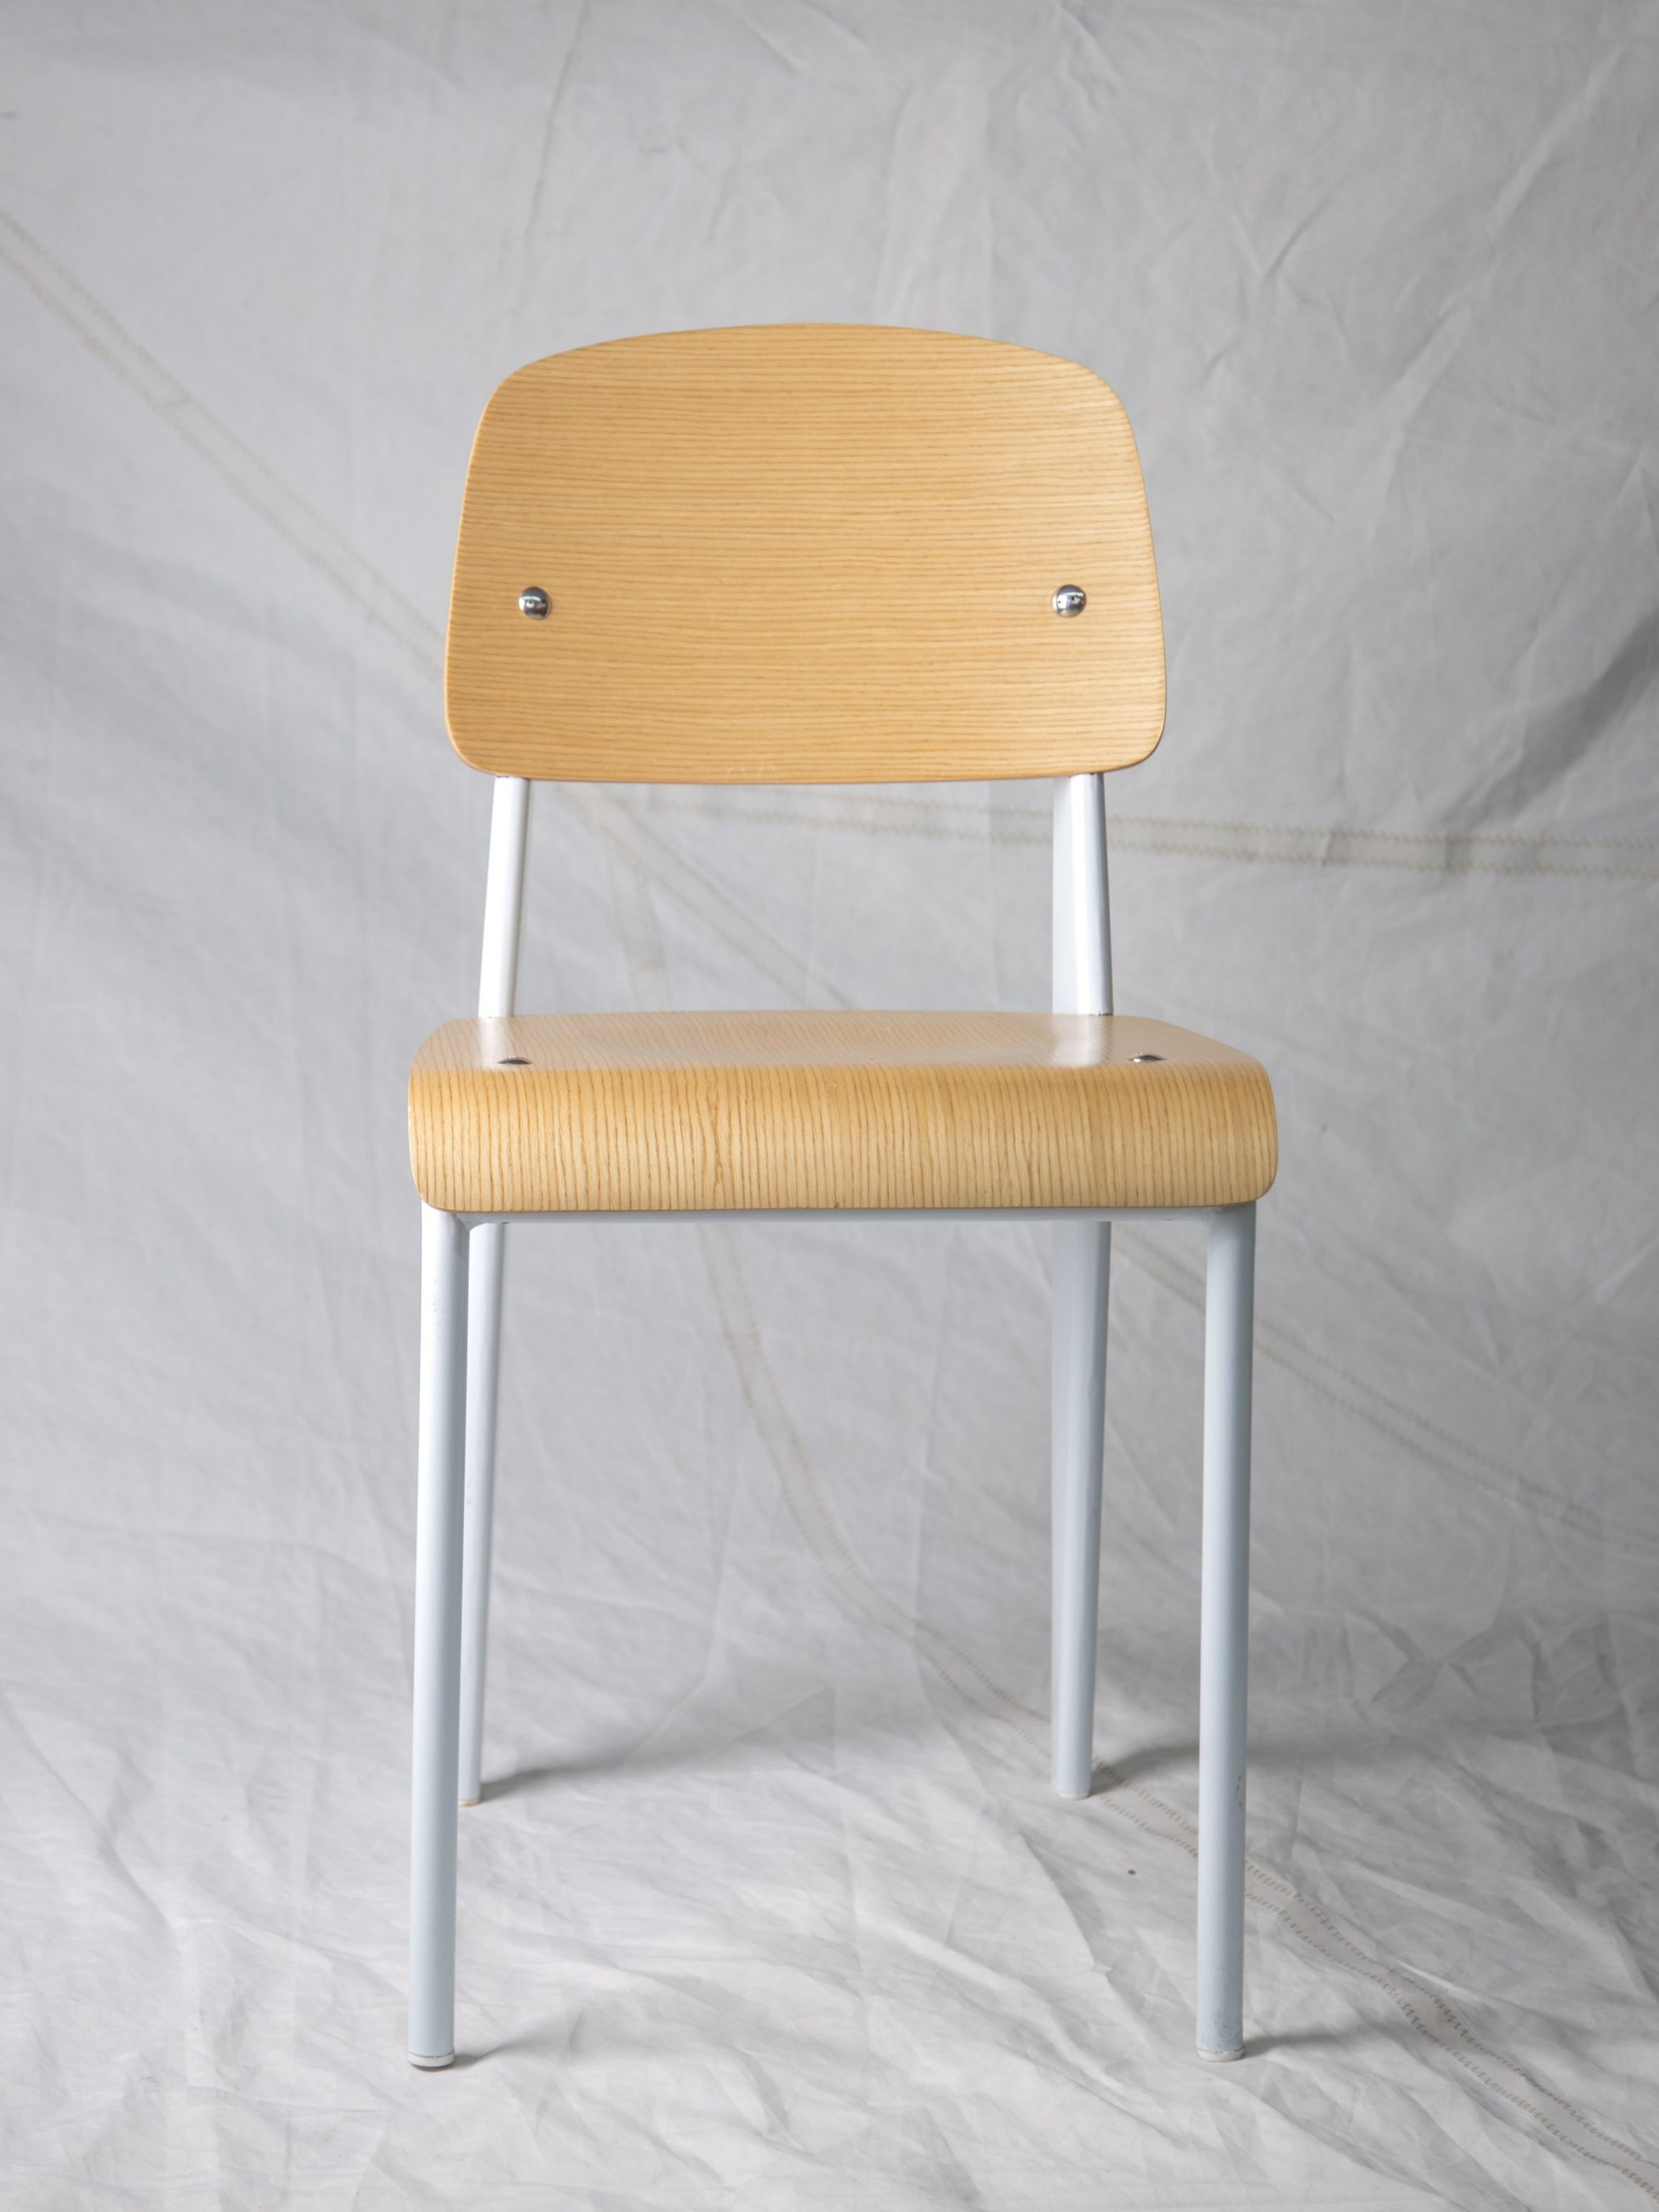 "CH056  Prouvé style chair, white/wood 32"" H x 16"" W x 19"" D  $100/week"